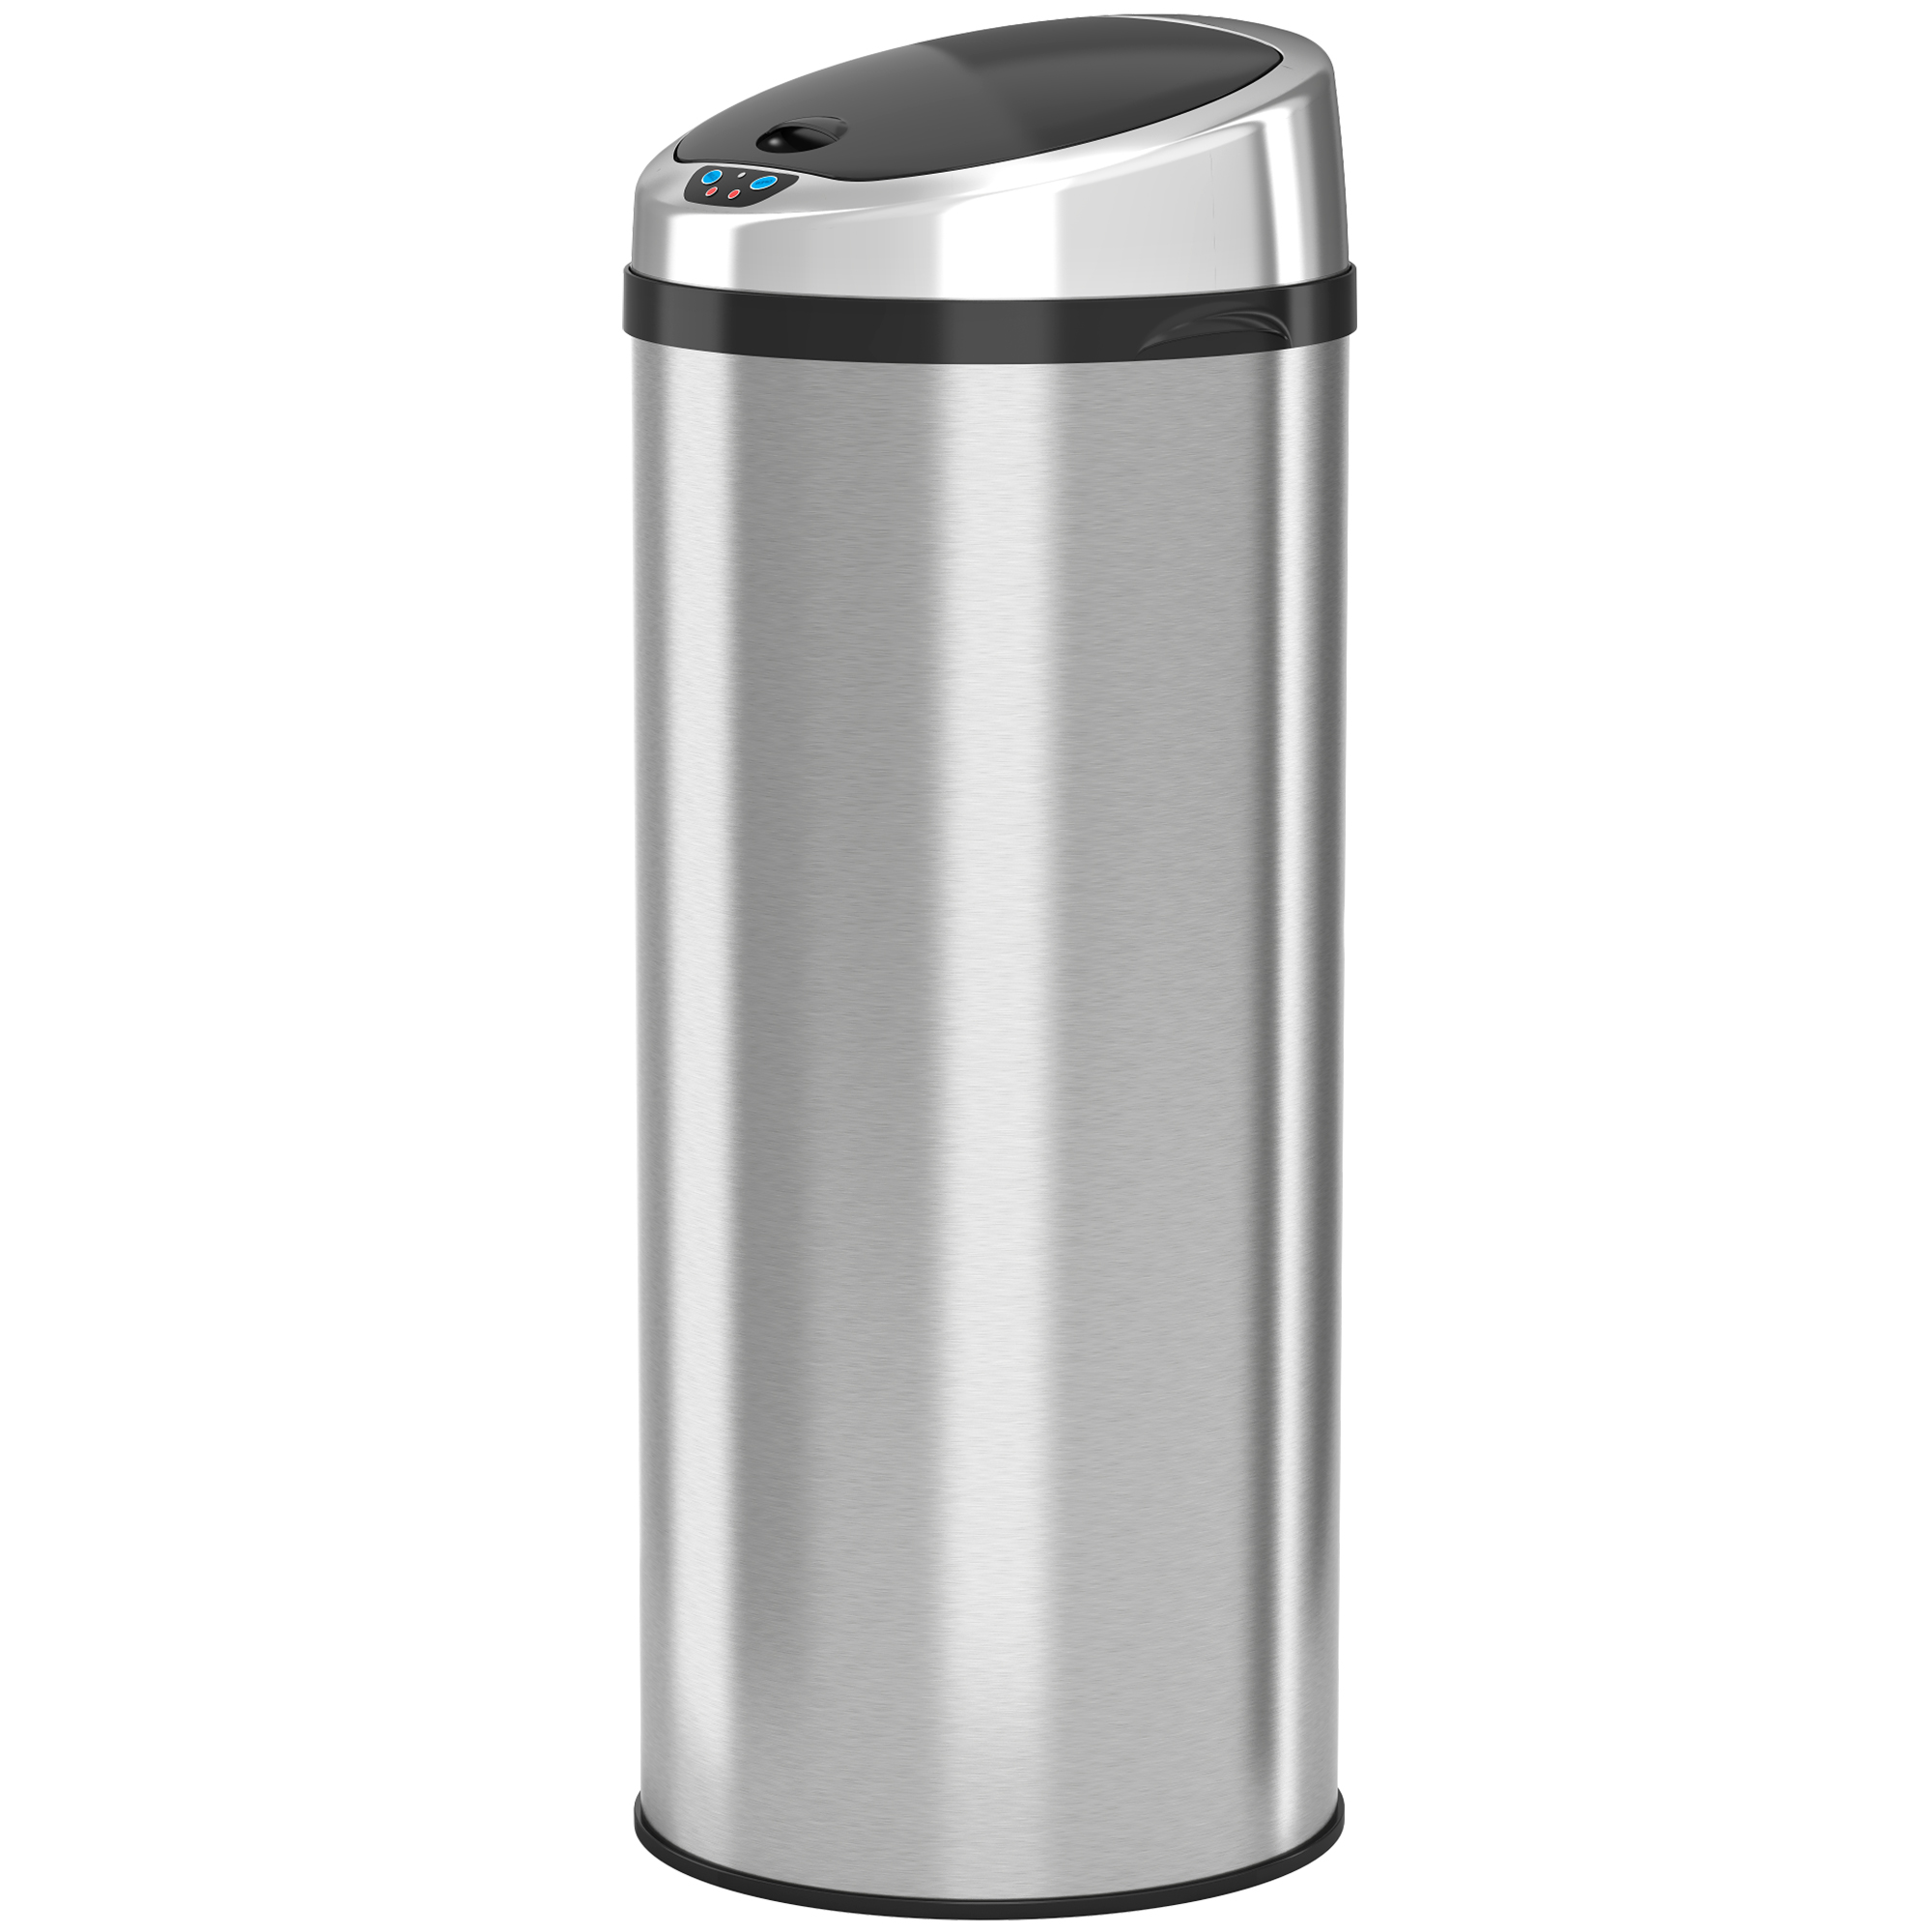 iTouchless Stainless Steel 13 Gallon Motion Sensor Trash Can by iTouchless